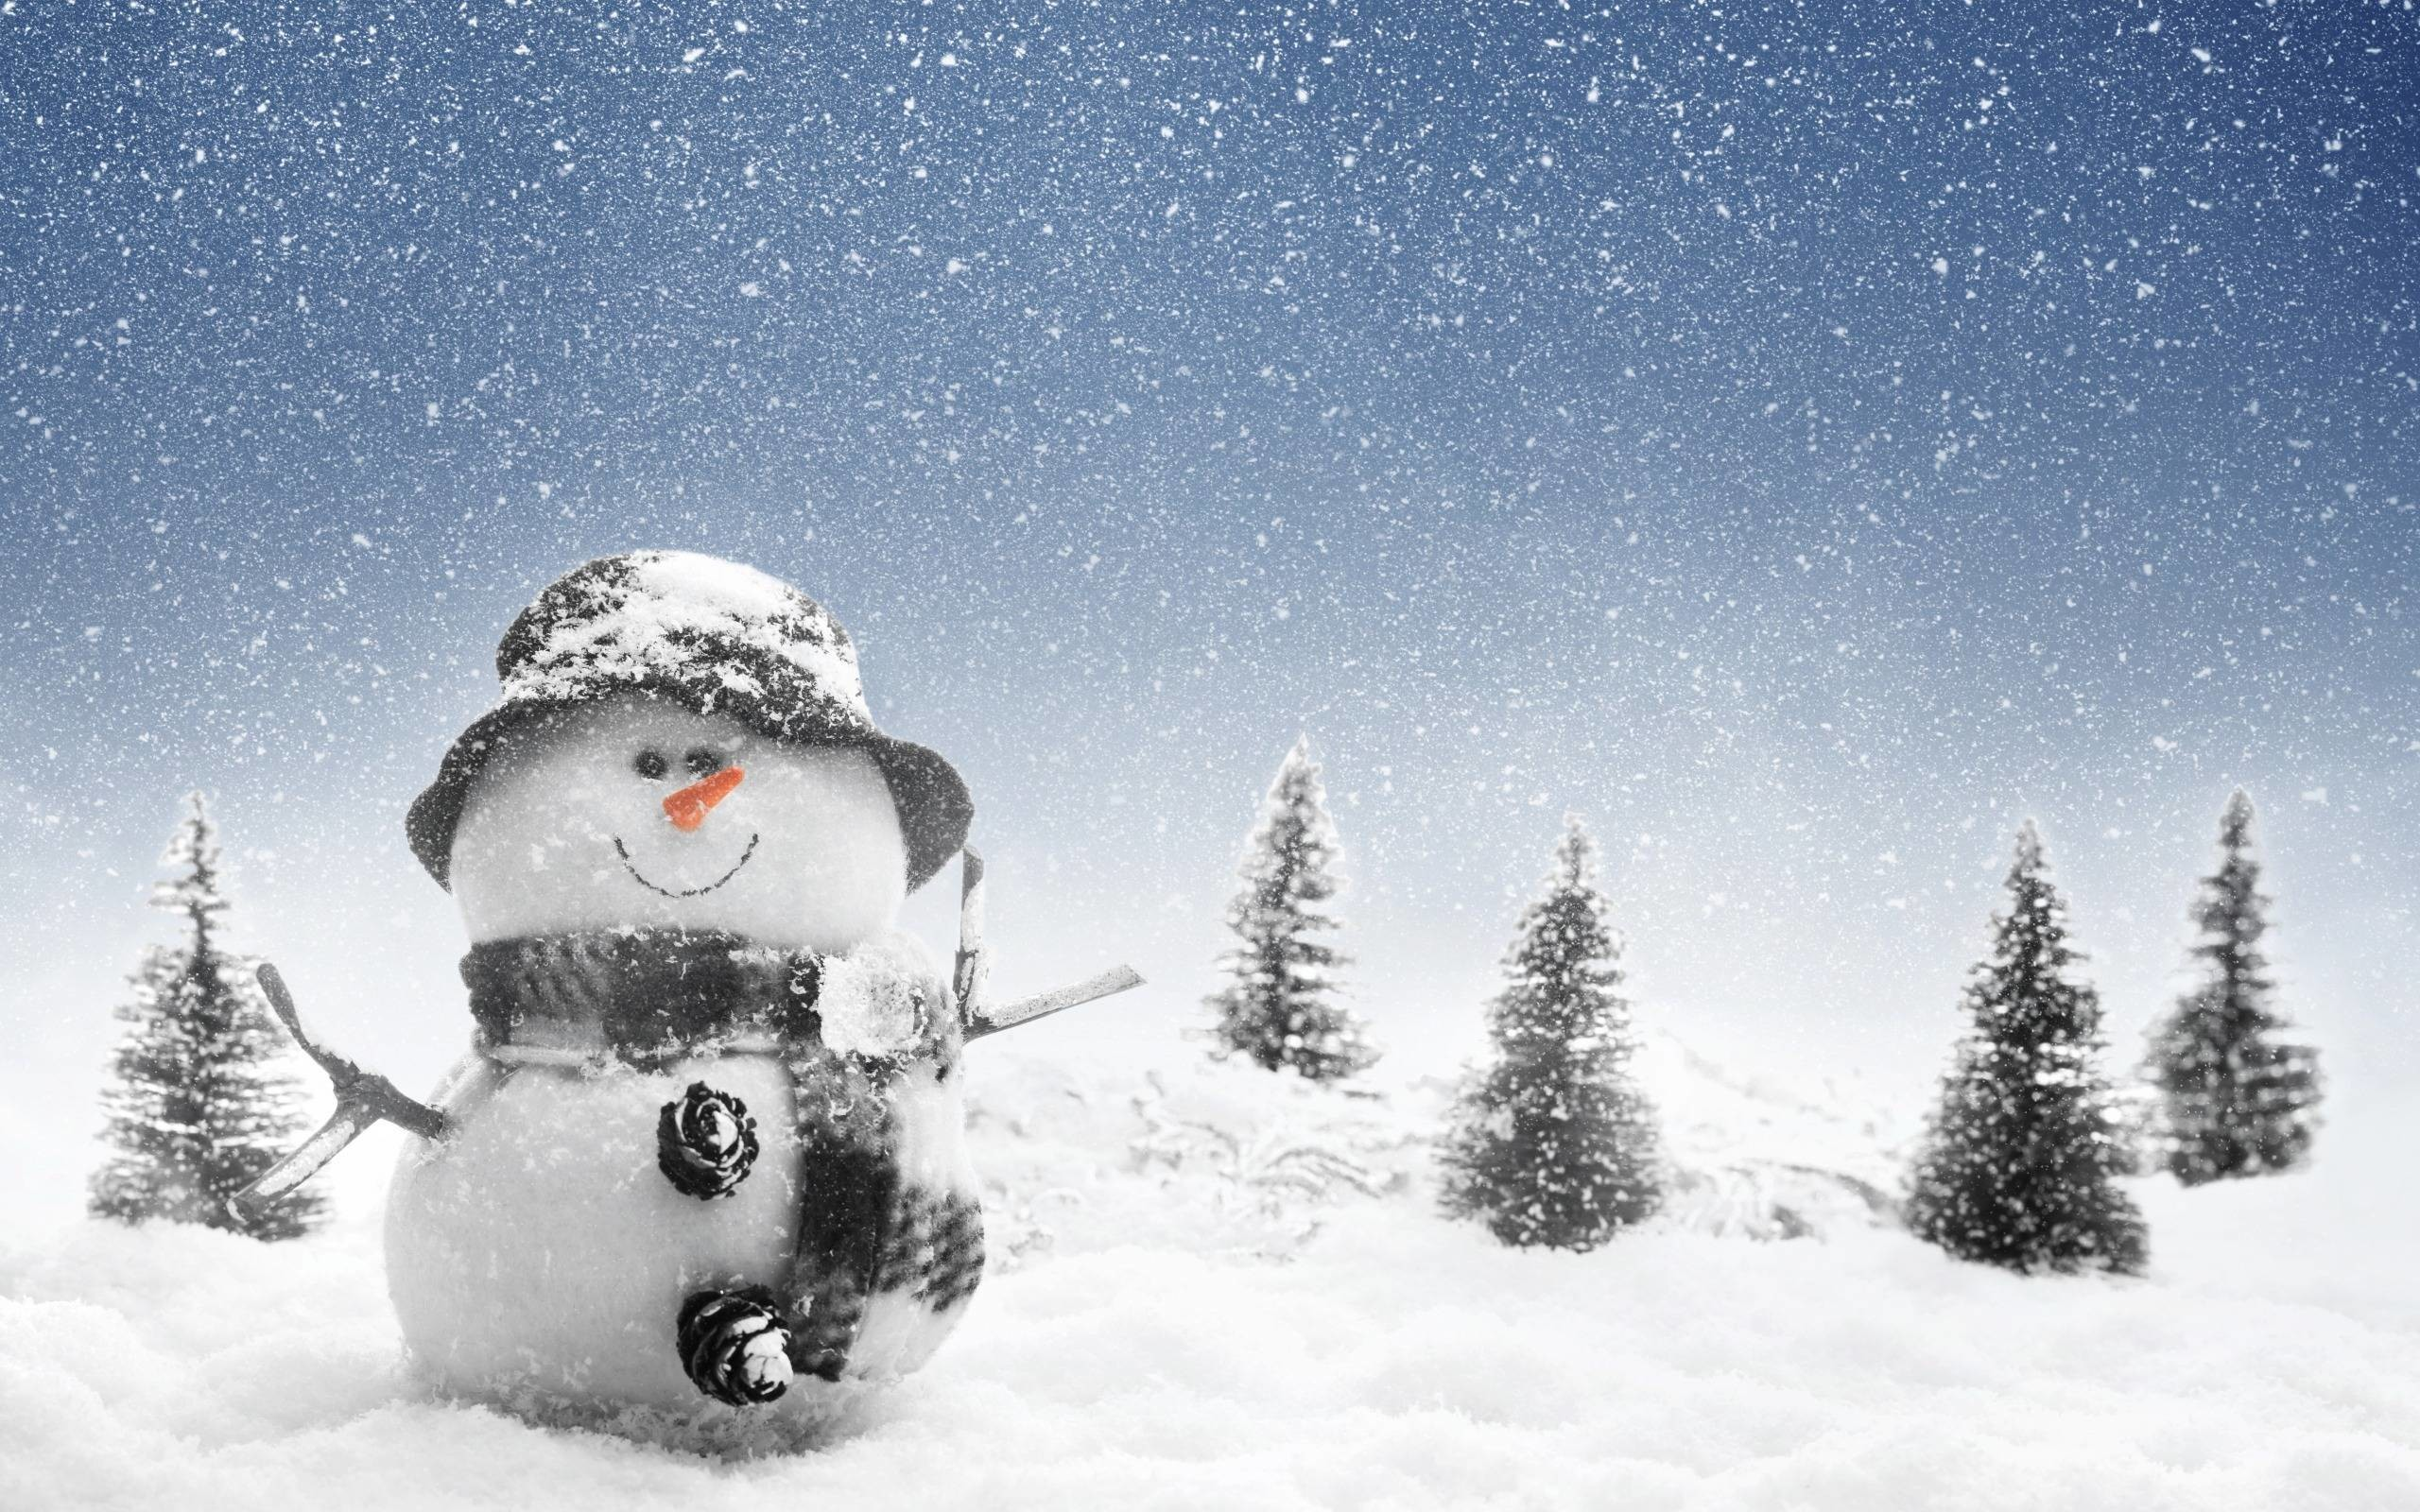 2560x1600 snowman wallpaper in winter hd wallpapers high definition cool apple mac  tablet download free 2560×1600 Wallpaper HD